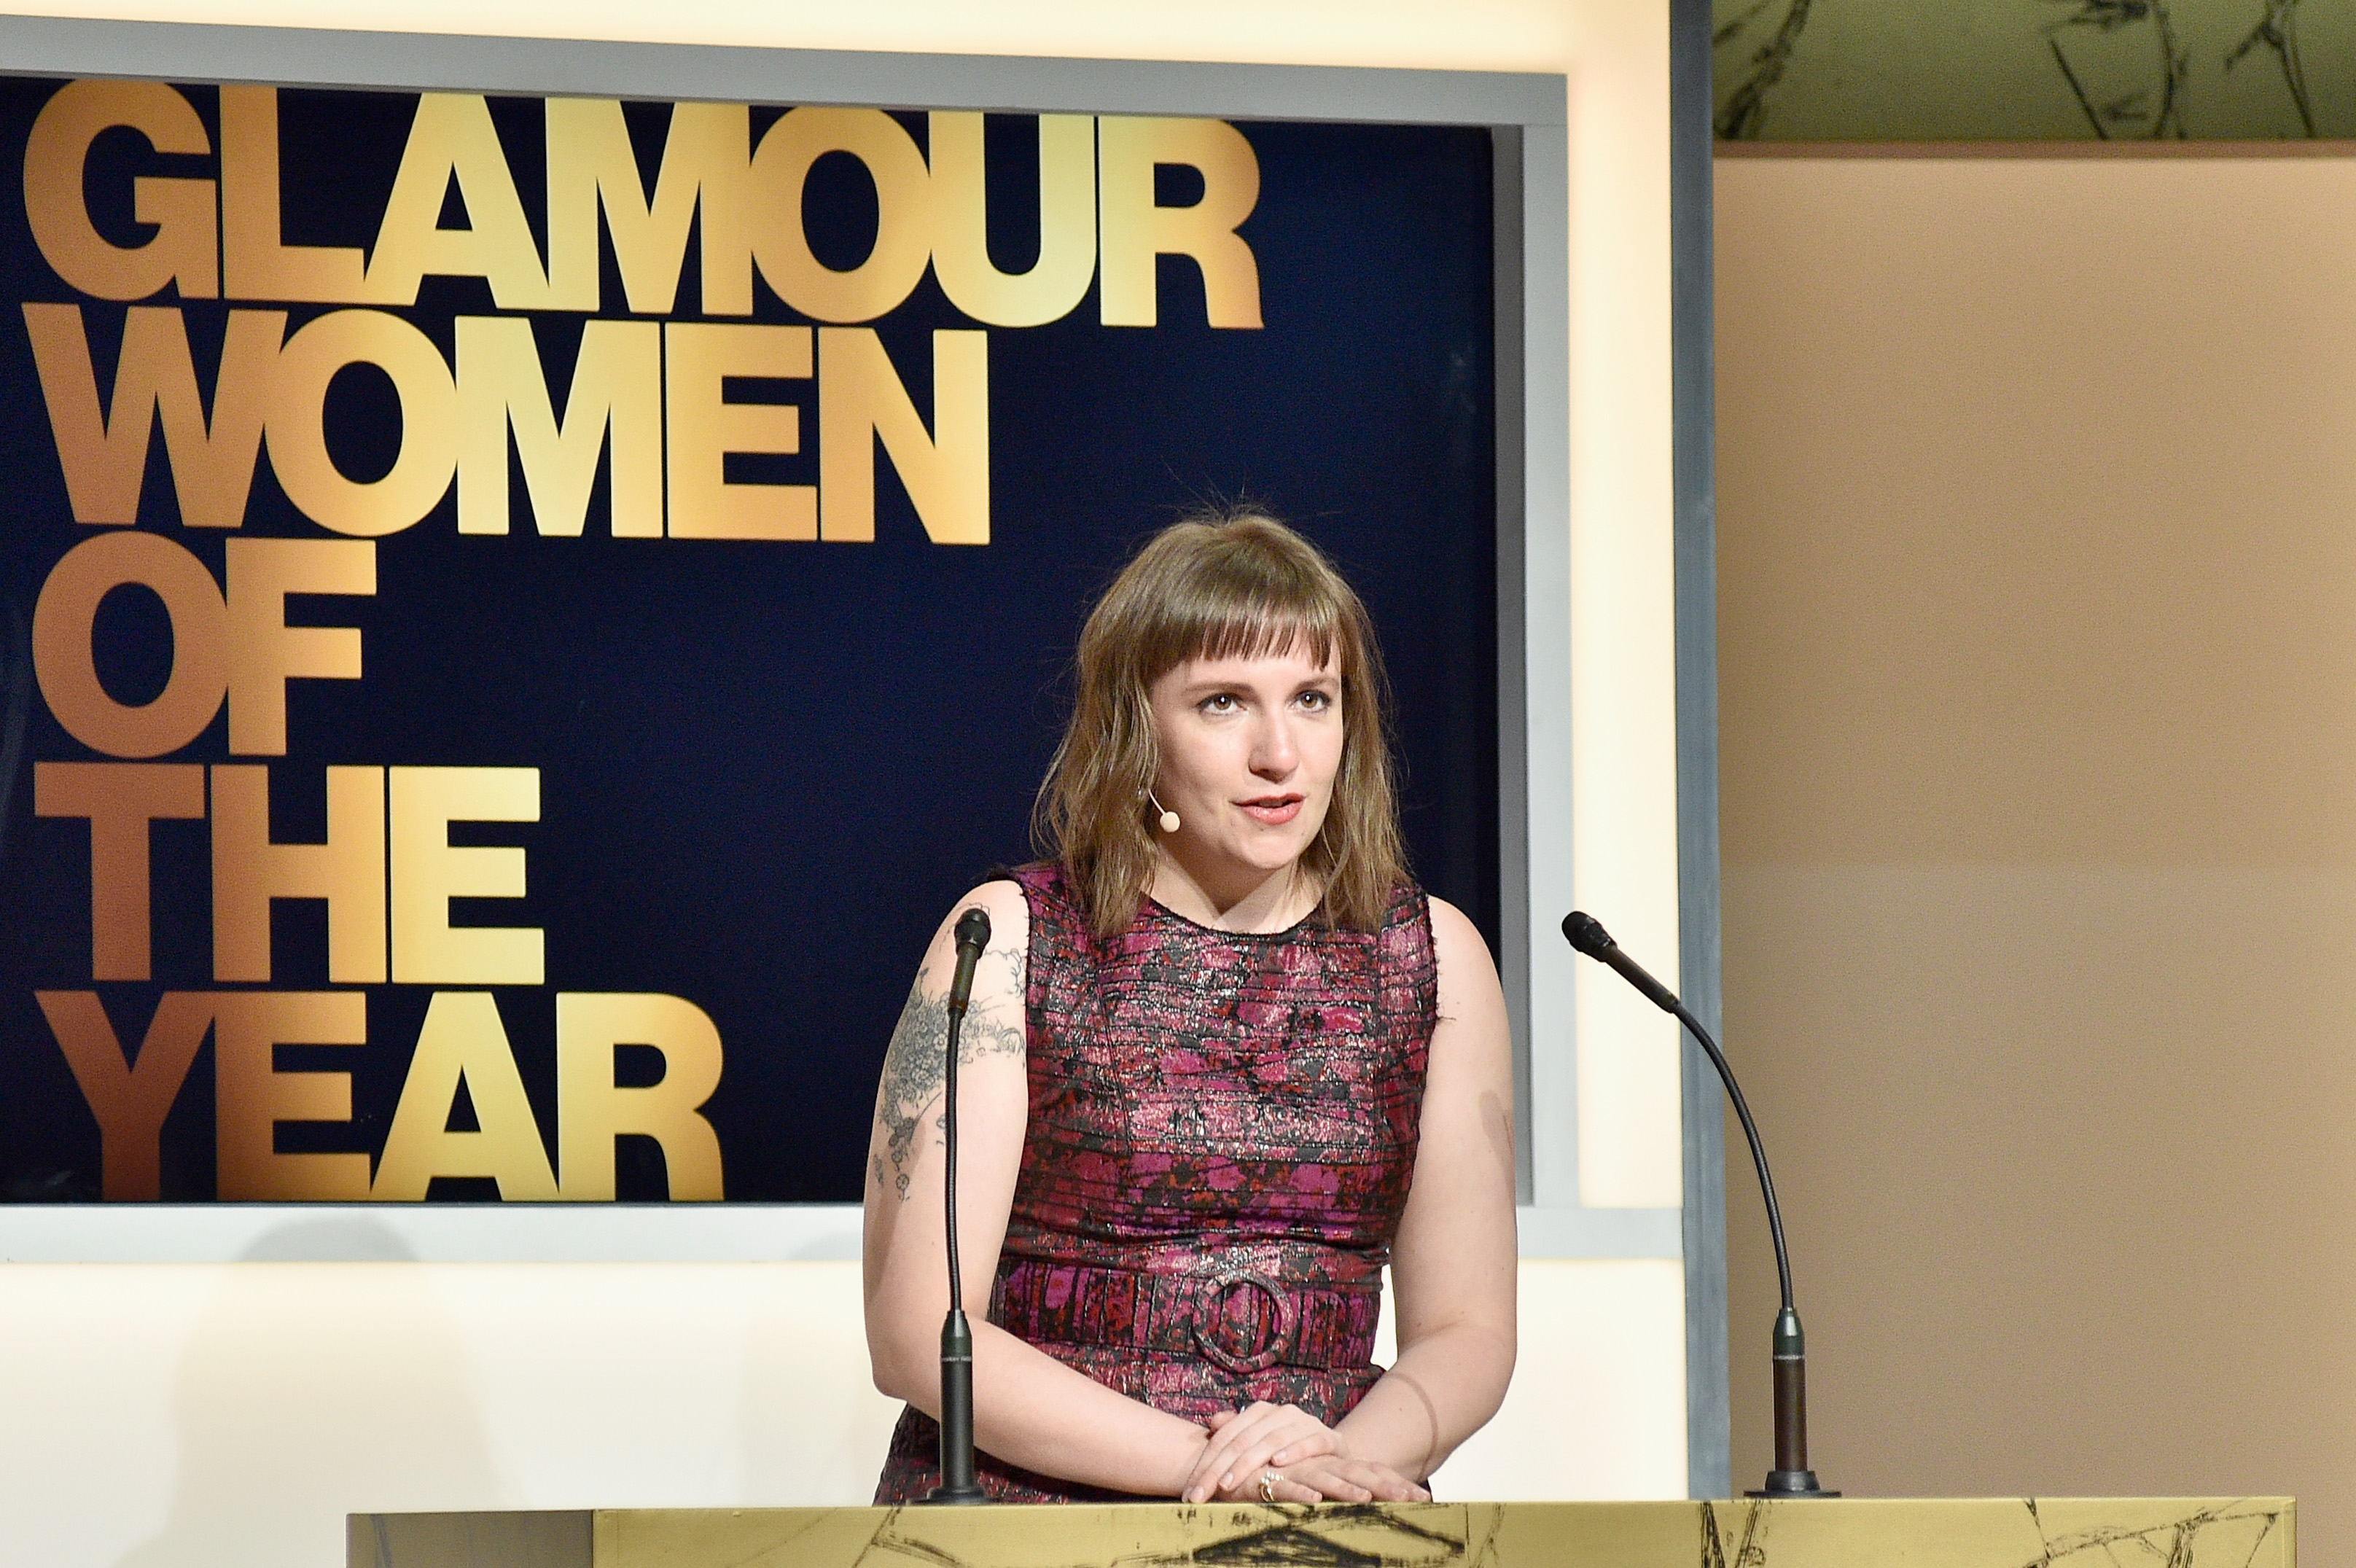 Actress/writer Lena Dunham speaks onstage Glamour Women Of The Year 2016 at NeueHouse Hollywood on Nov. 14, 2016 in Los Angeles.